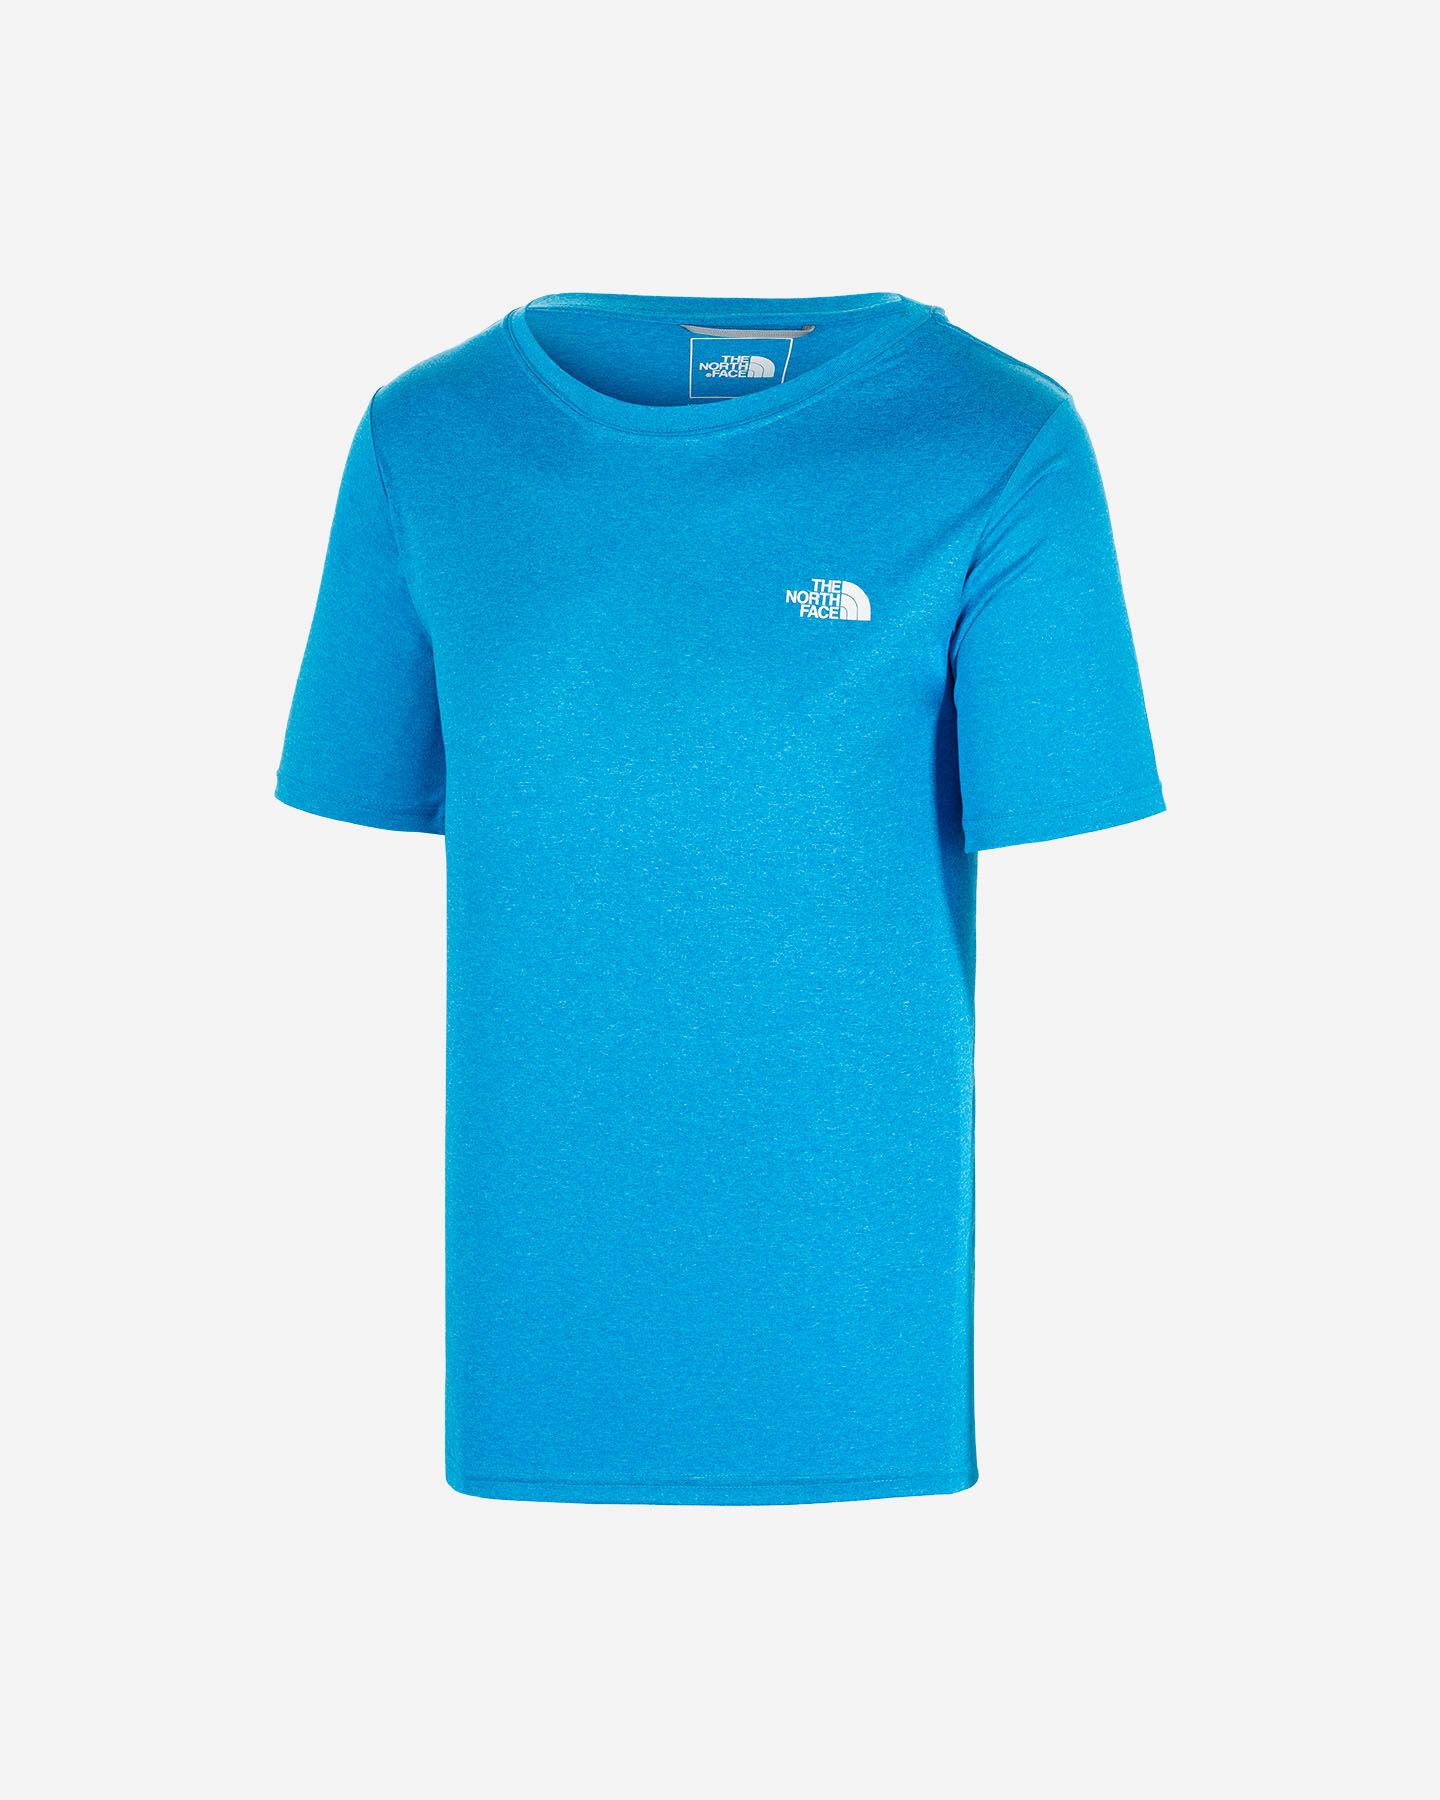 T-Shirt THE NORTH FACE REAXION AMP M S5182554 scatto 0